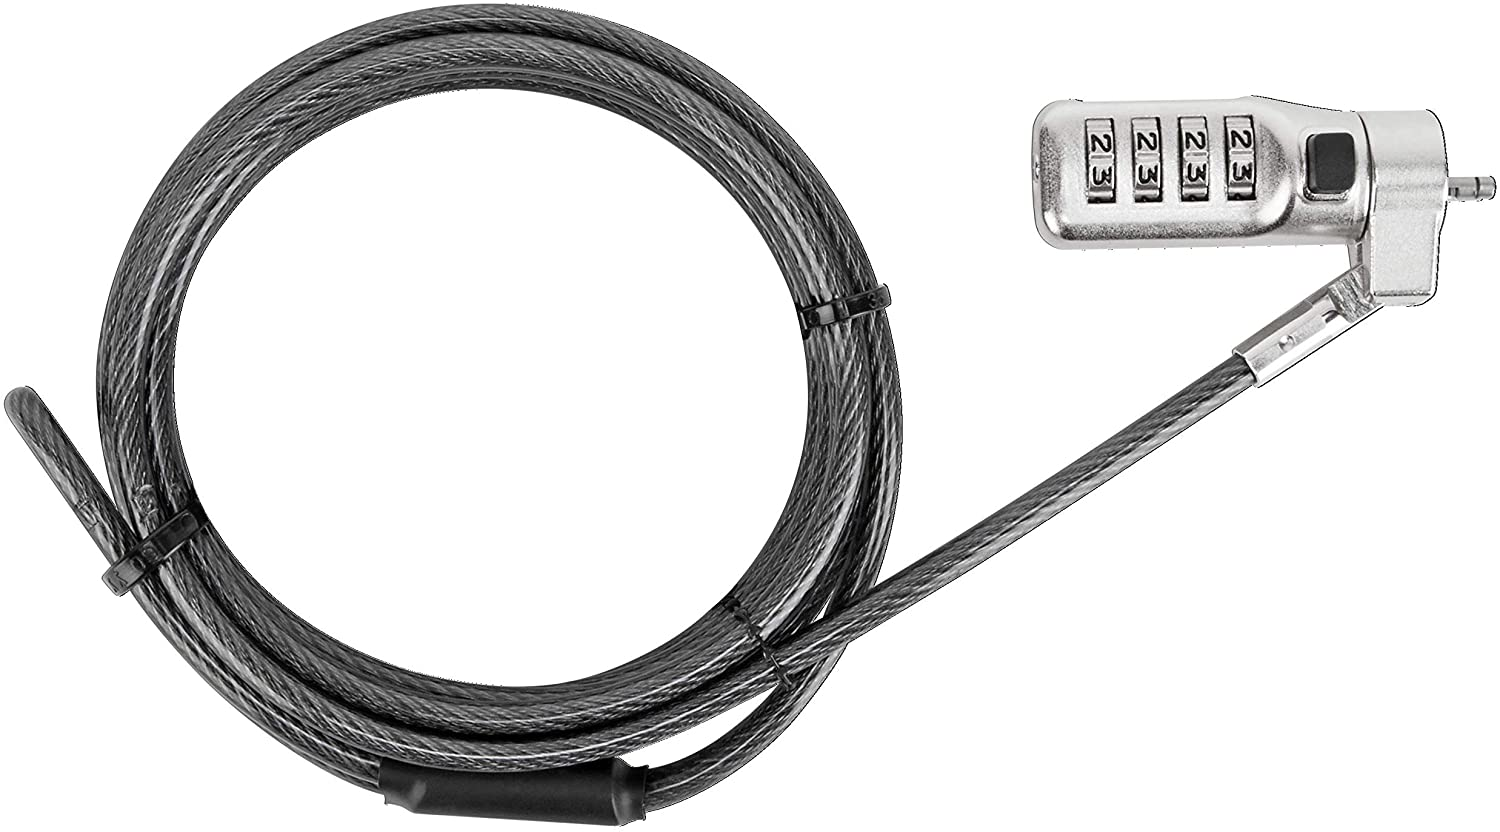 Targus DEFCON 3-in-1 Universal Resettable Combo Cable Lock for Laptop Computer and Desktop Security (ASP86RGL)